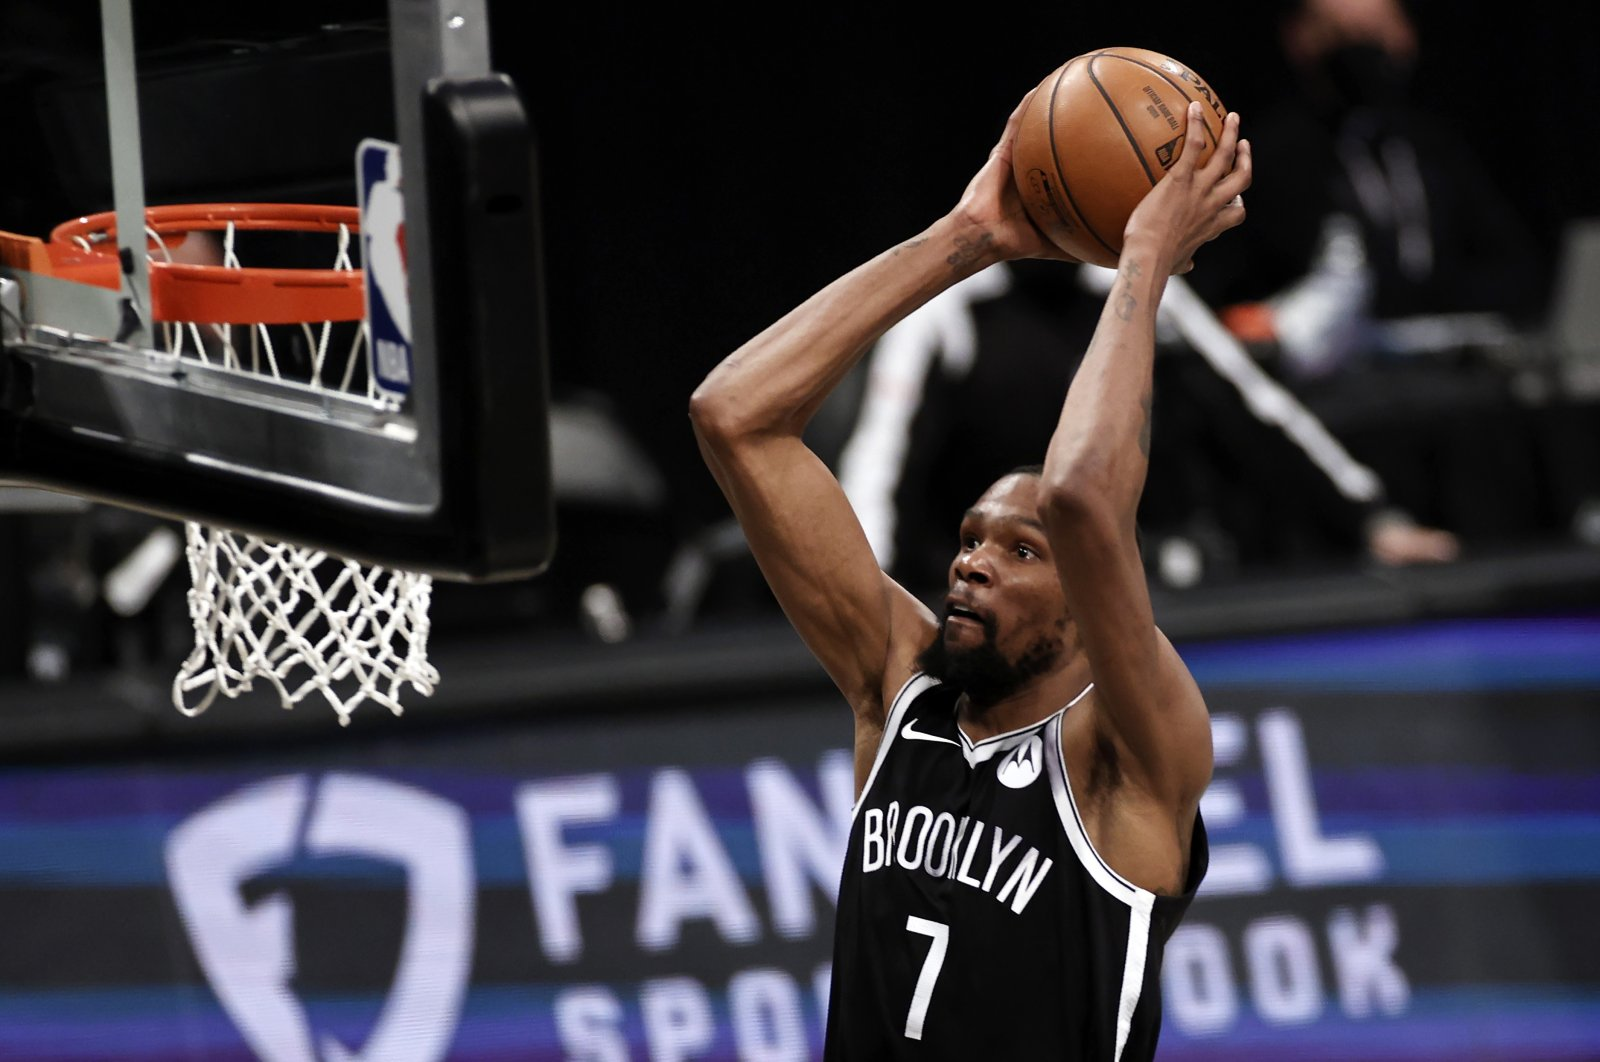 Brooklyn Nets forward Kevin Durant dunks against the Milwaukee Bucks during Game 1 of an NBA basketball second-round playoff series match, New York, U.S., June 5, 2021. (AP Photo)